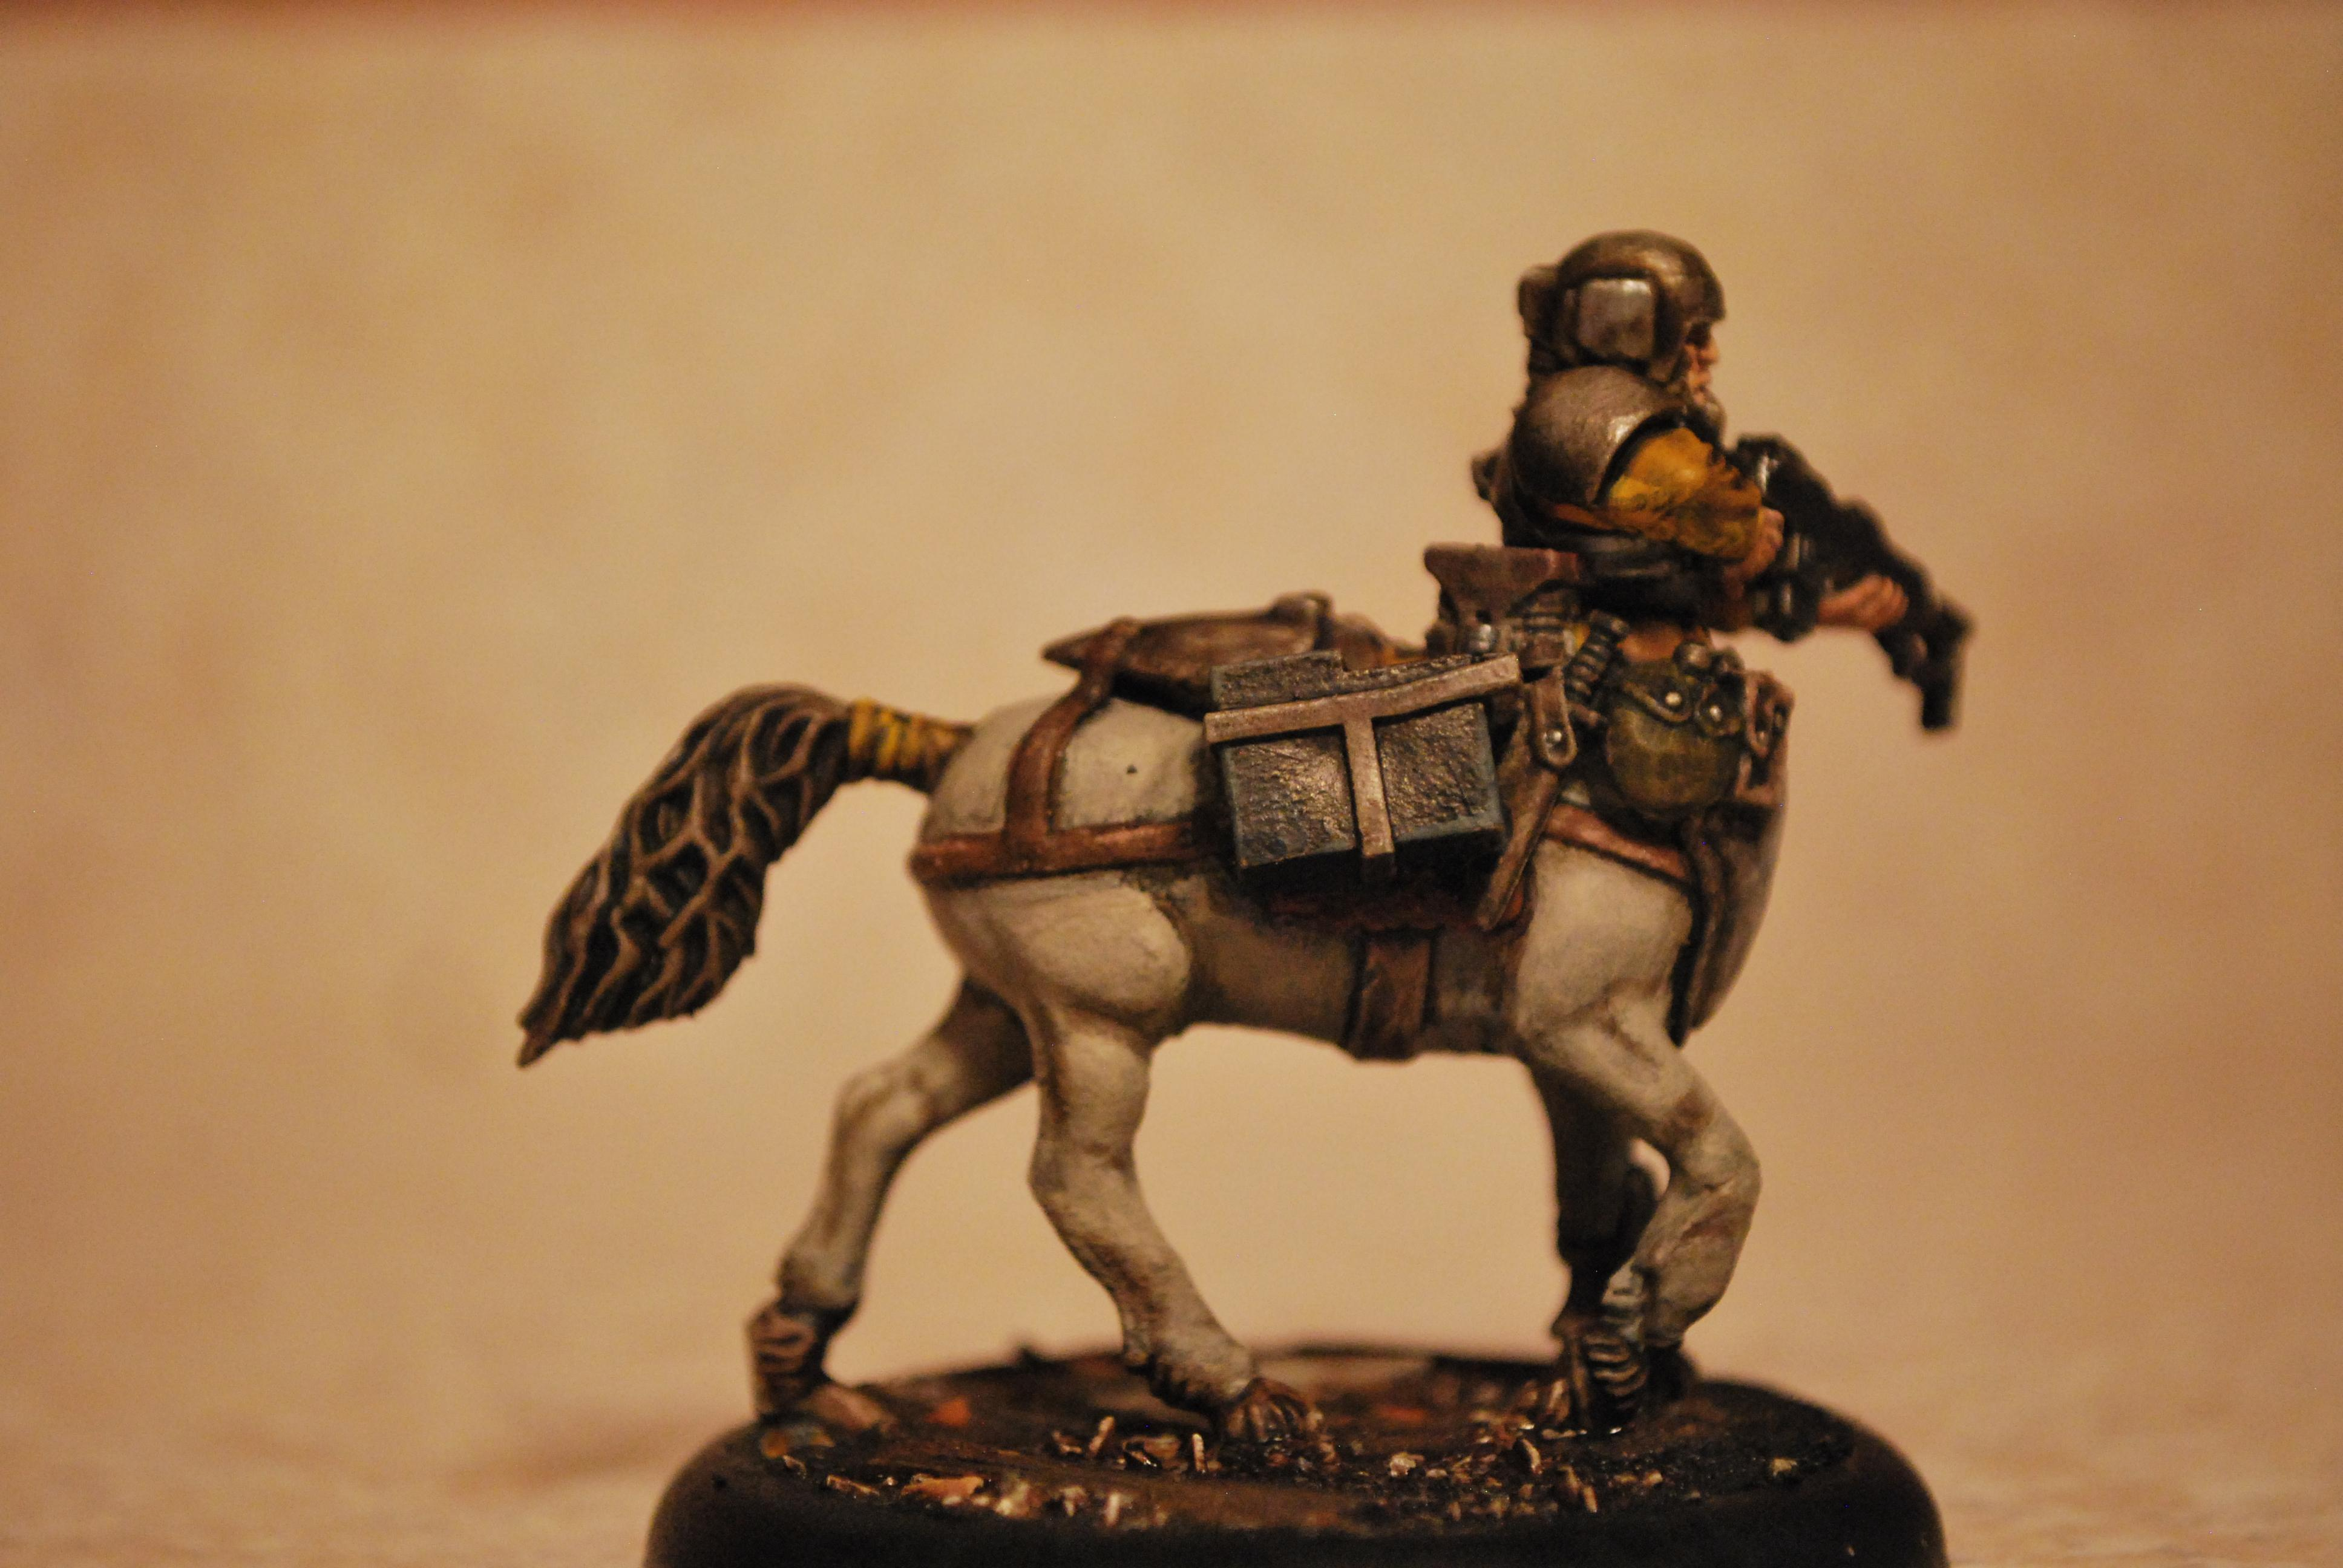 Centaur, Conversion, Custom, Empire, Fallout, Horse, Imperial Guard, Mutant, Plus, Post Apoc, Post Apocalyptic, Pro-create, Sculpting, Soldier, This Is Not A Test